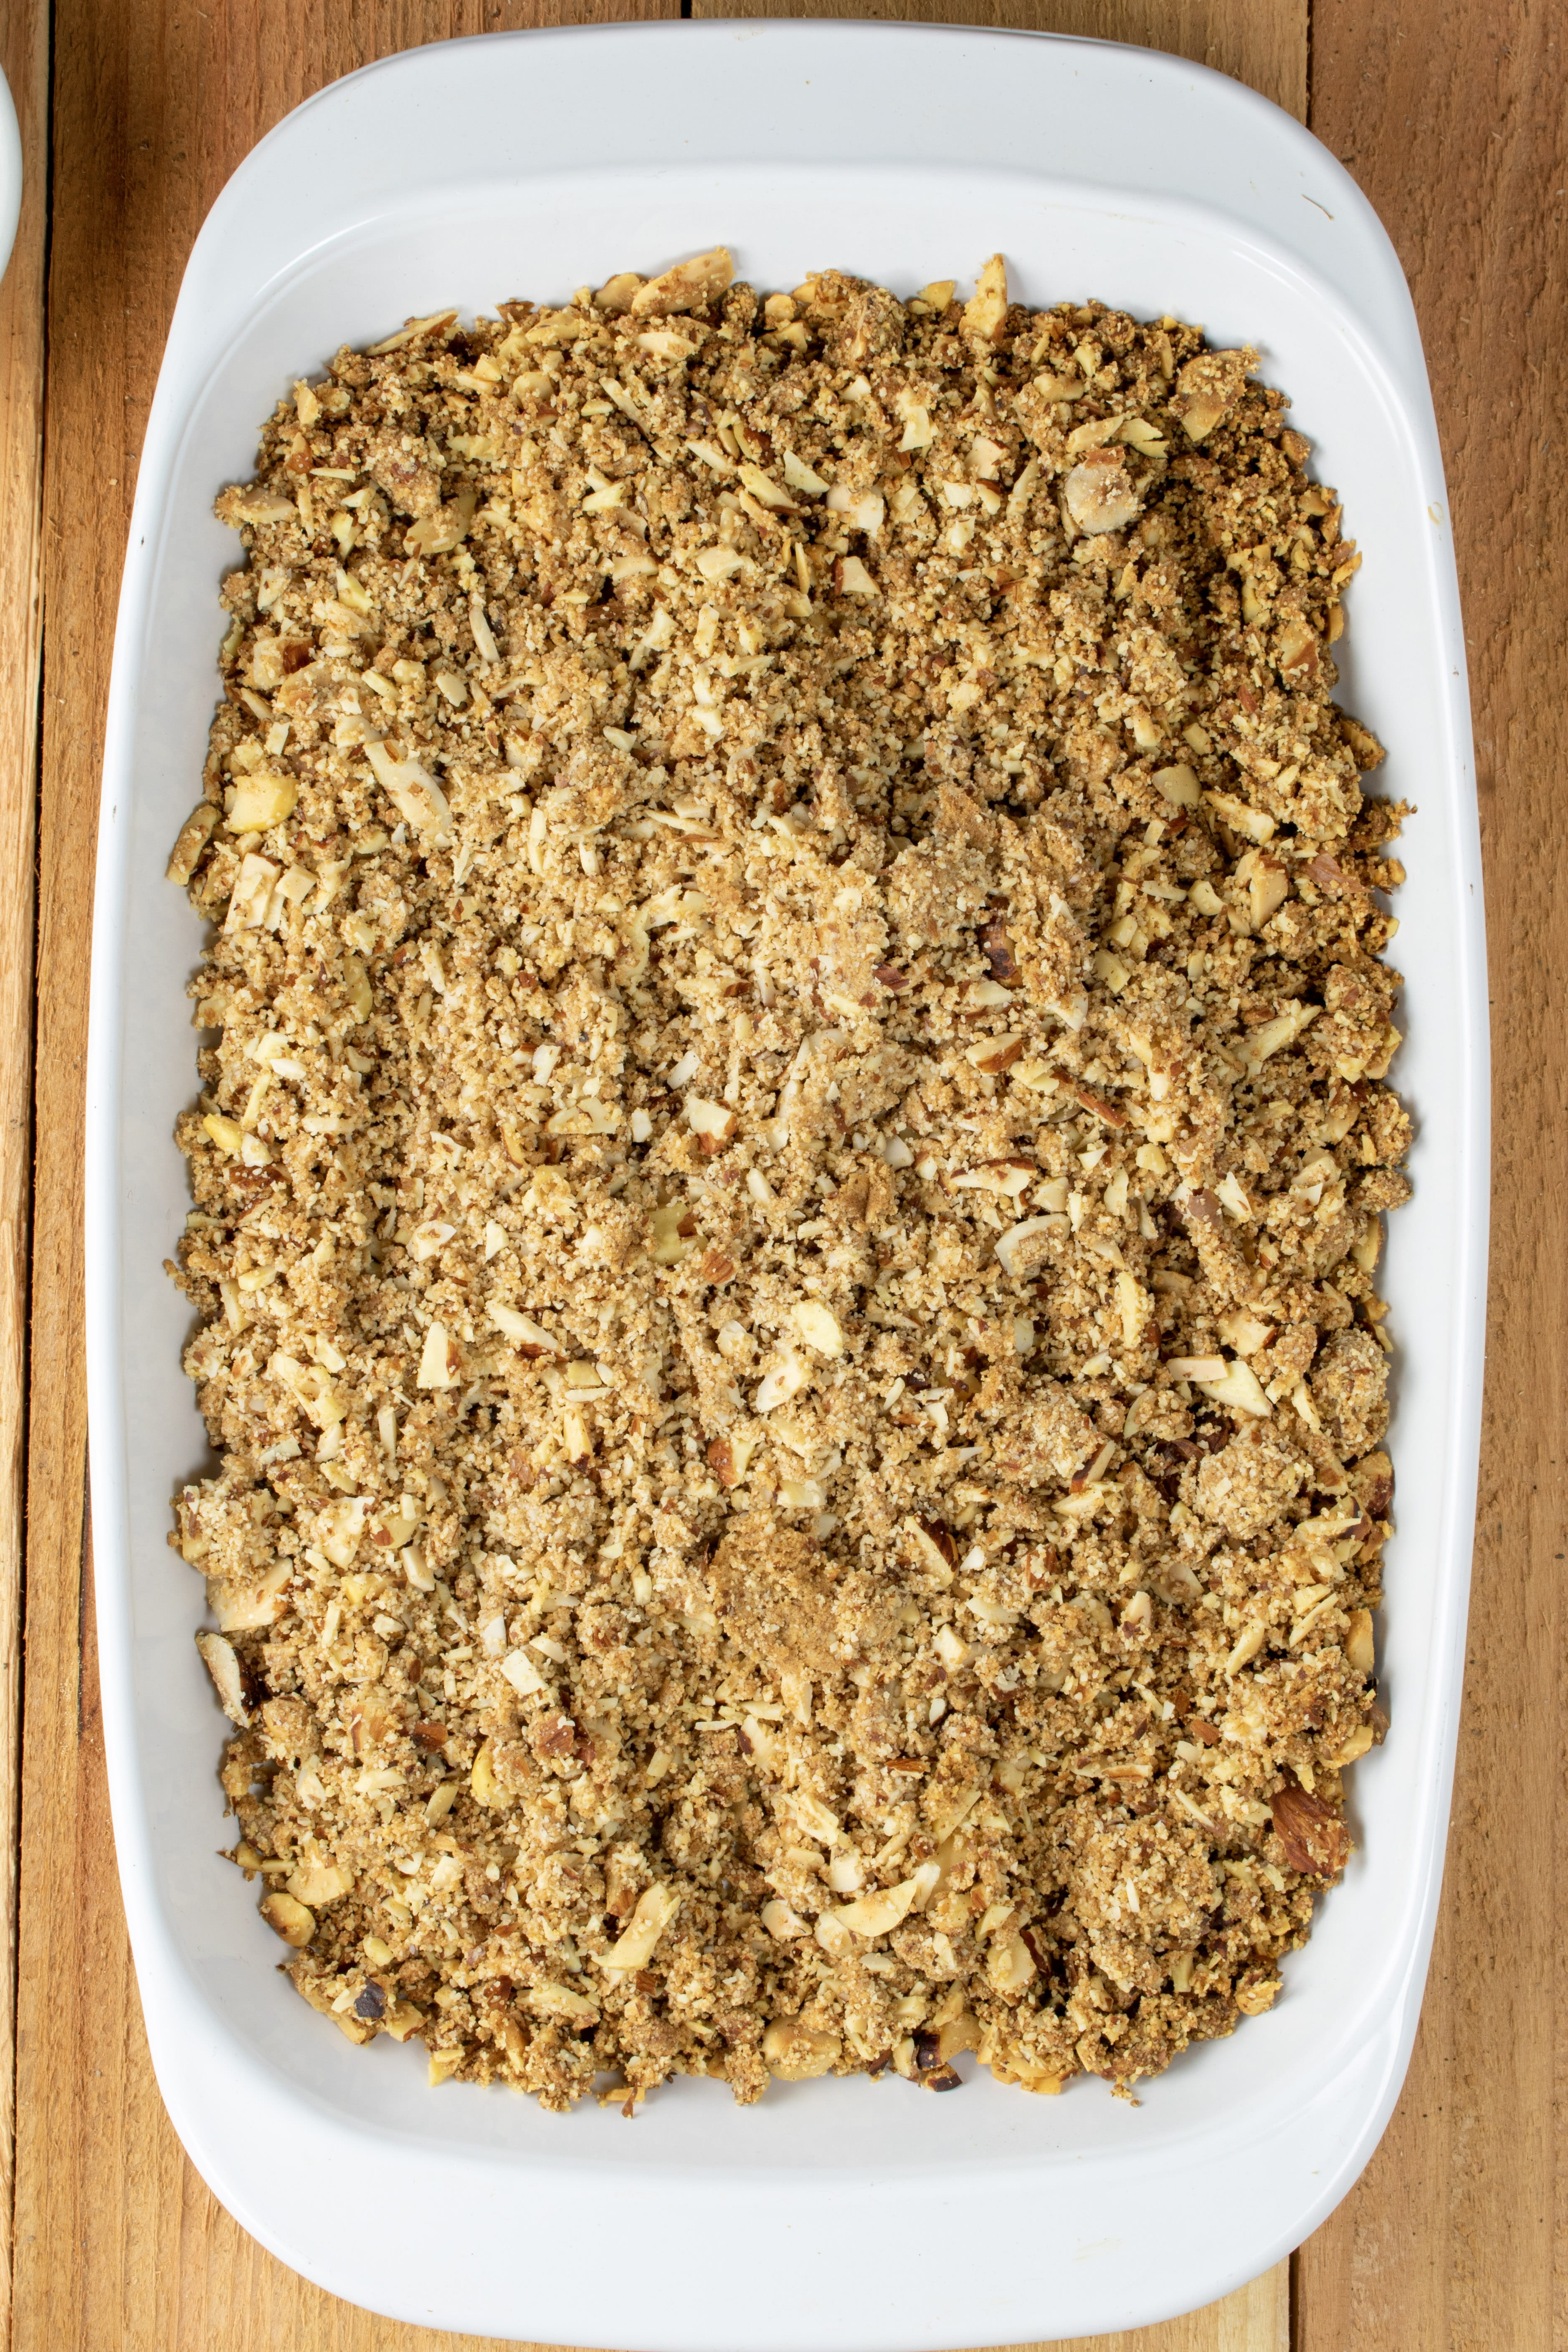 nut and spice parfait topping in baking dish